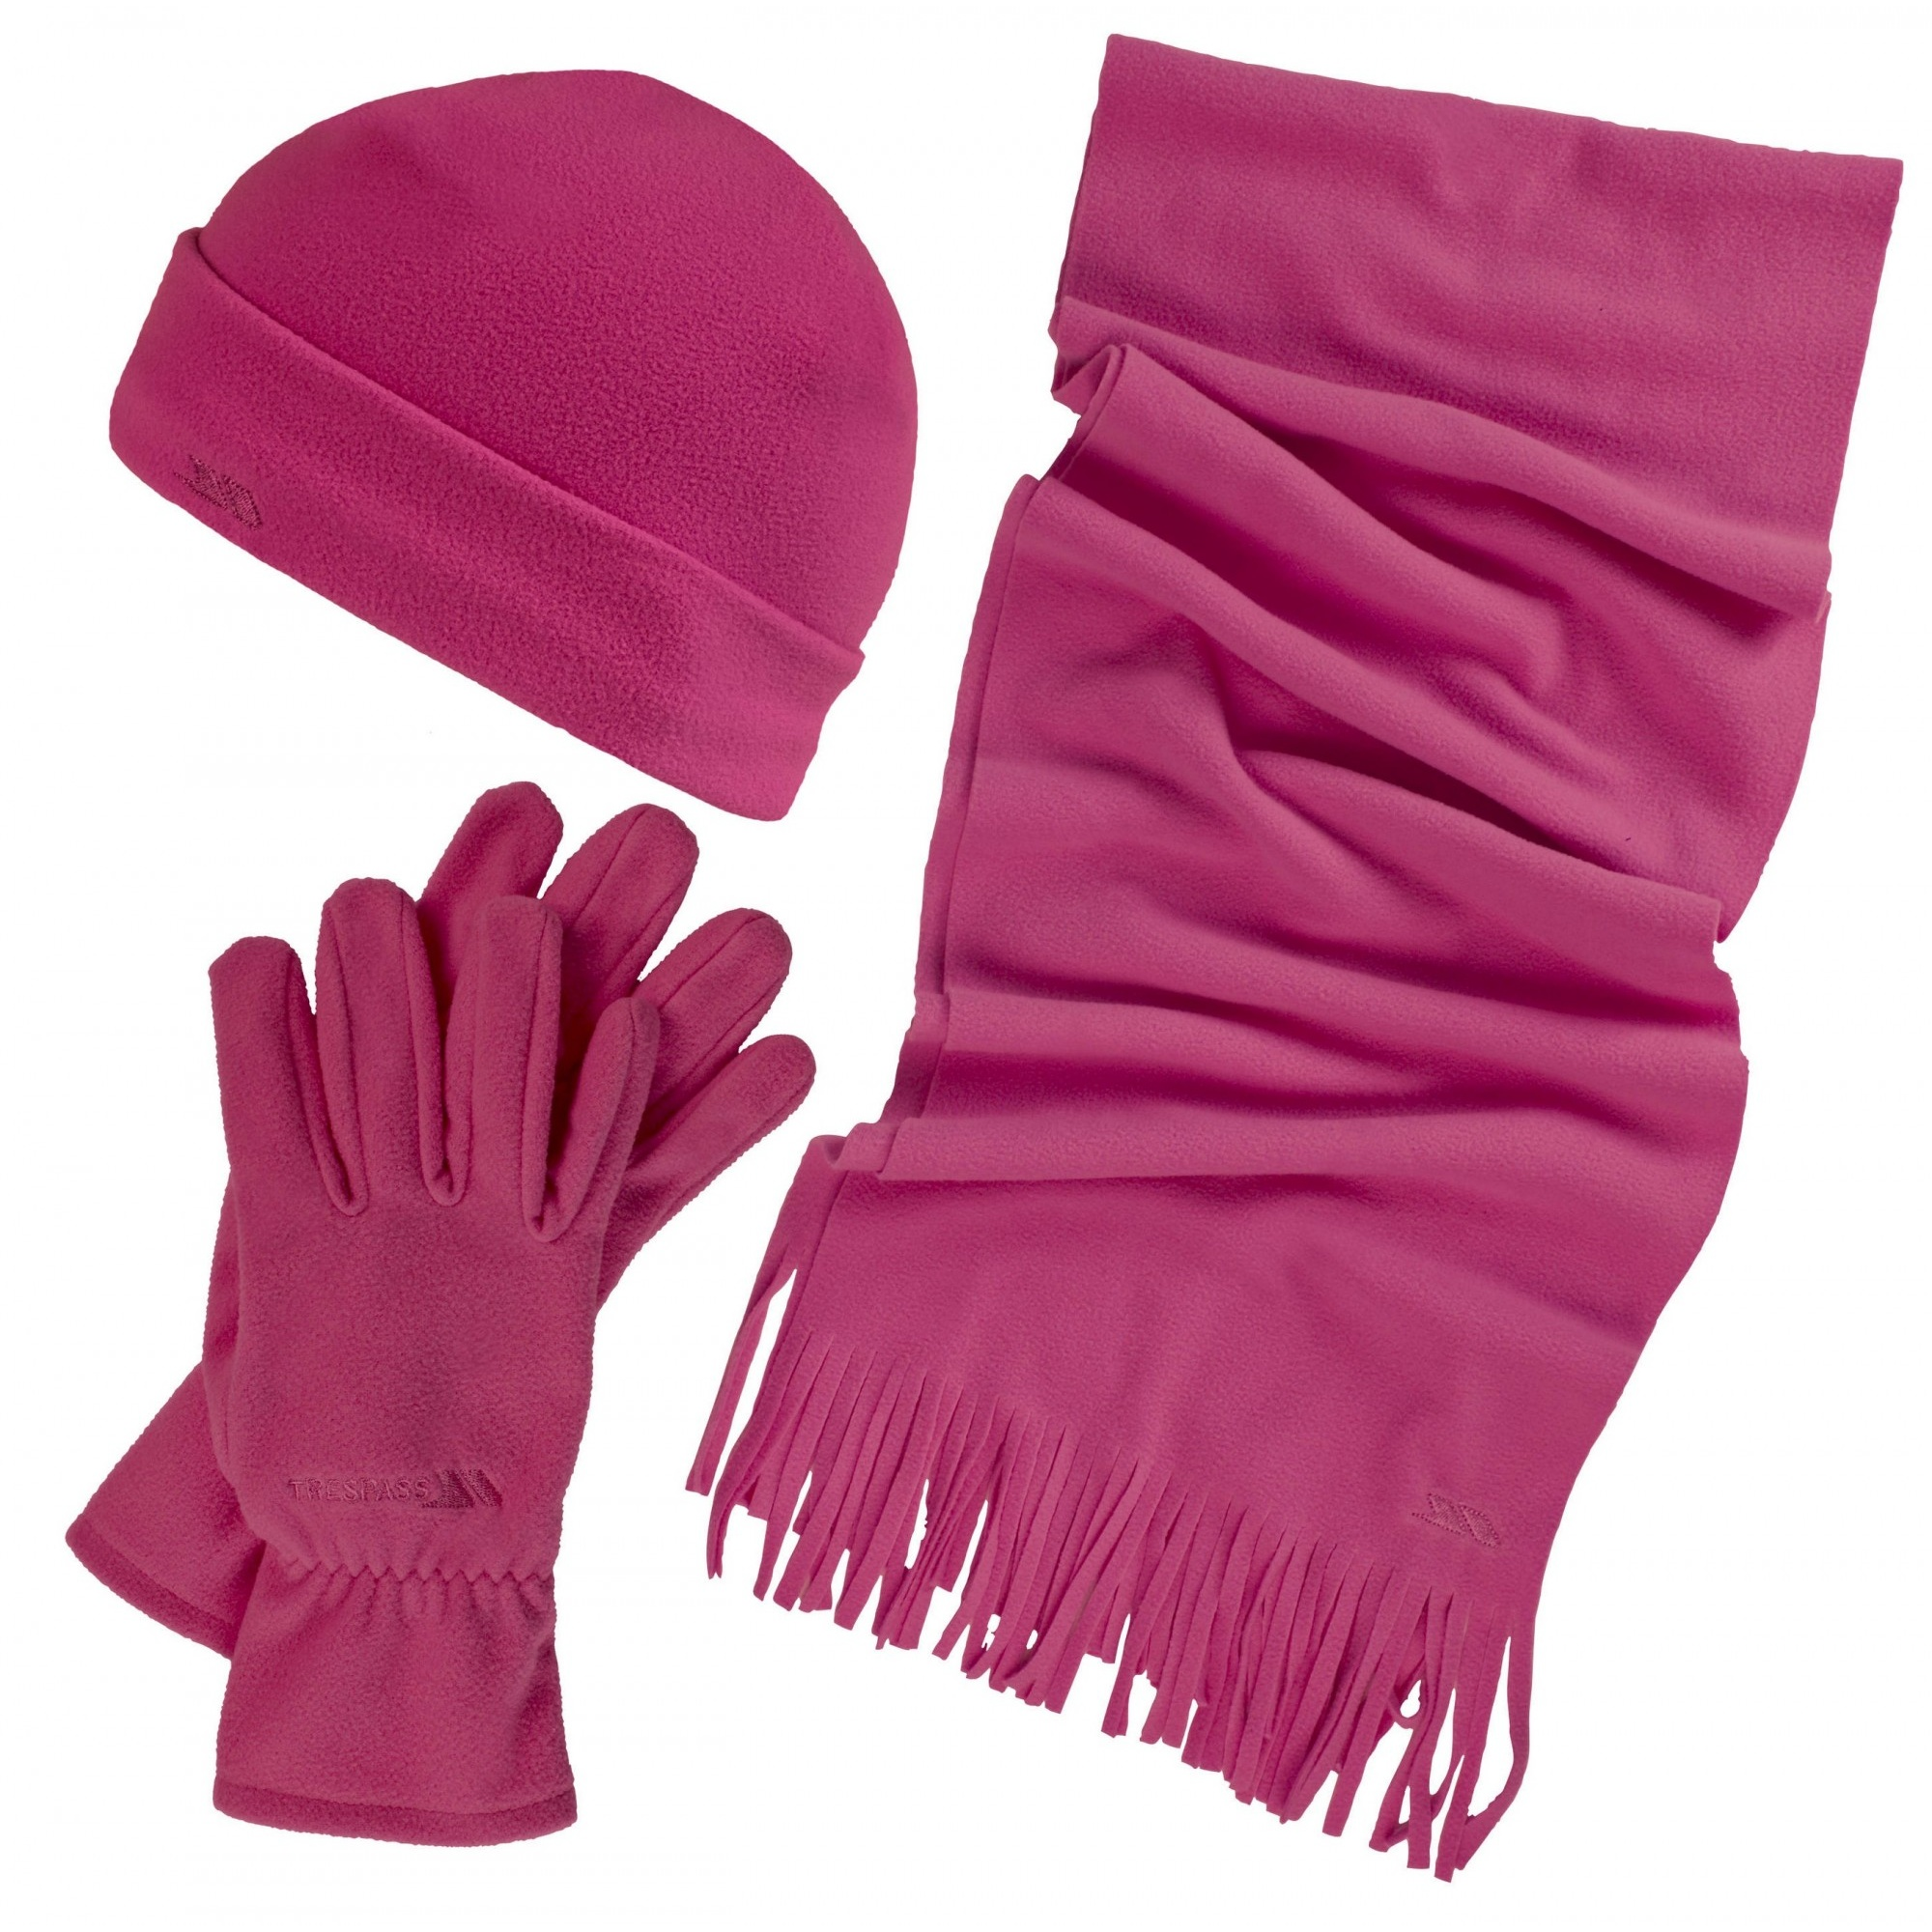 Find great deals on eBay for womens hat and gloves set. Shop with confidence.